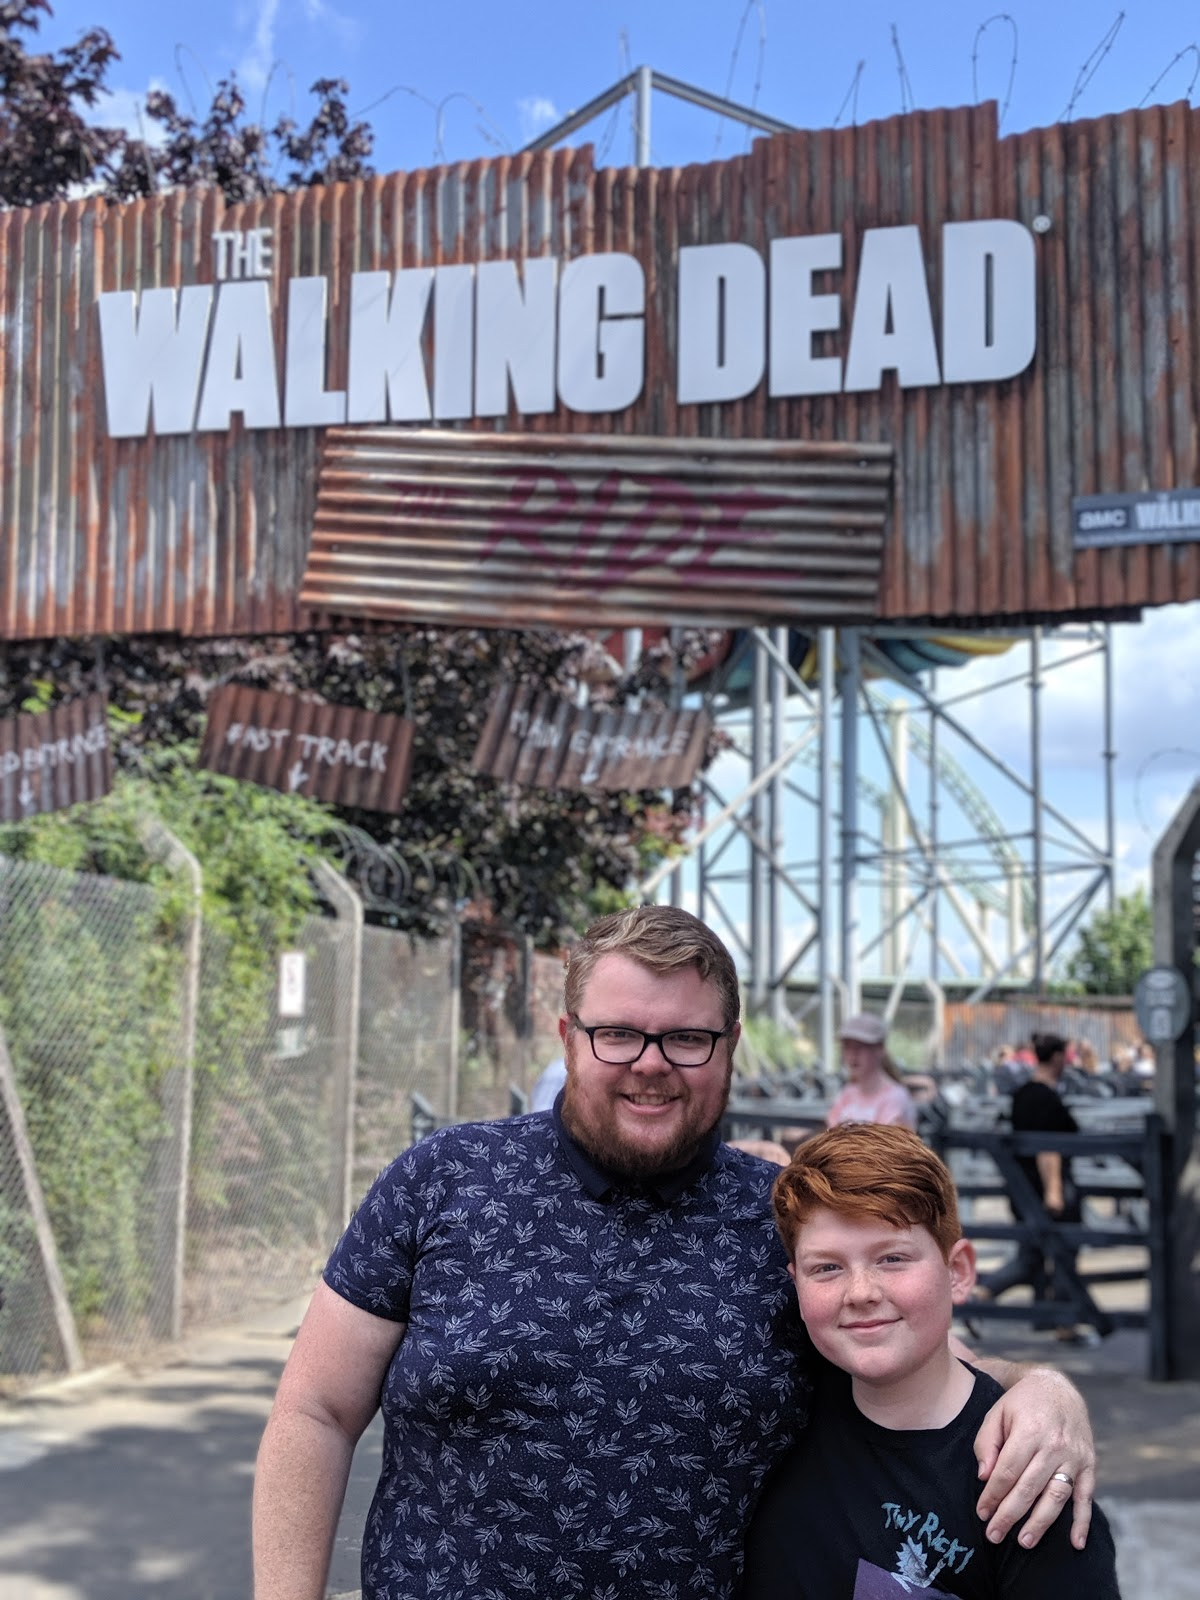 Exploring the Southern Merlin Theme Parks with Tweens  - The Walking Dead Ride at Thorpe Park